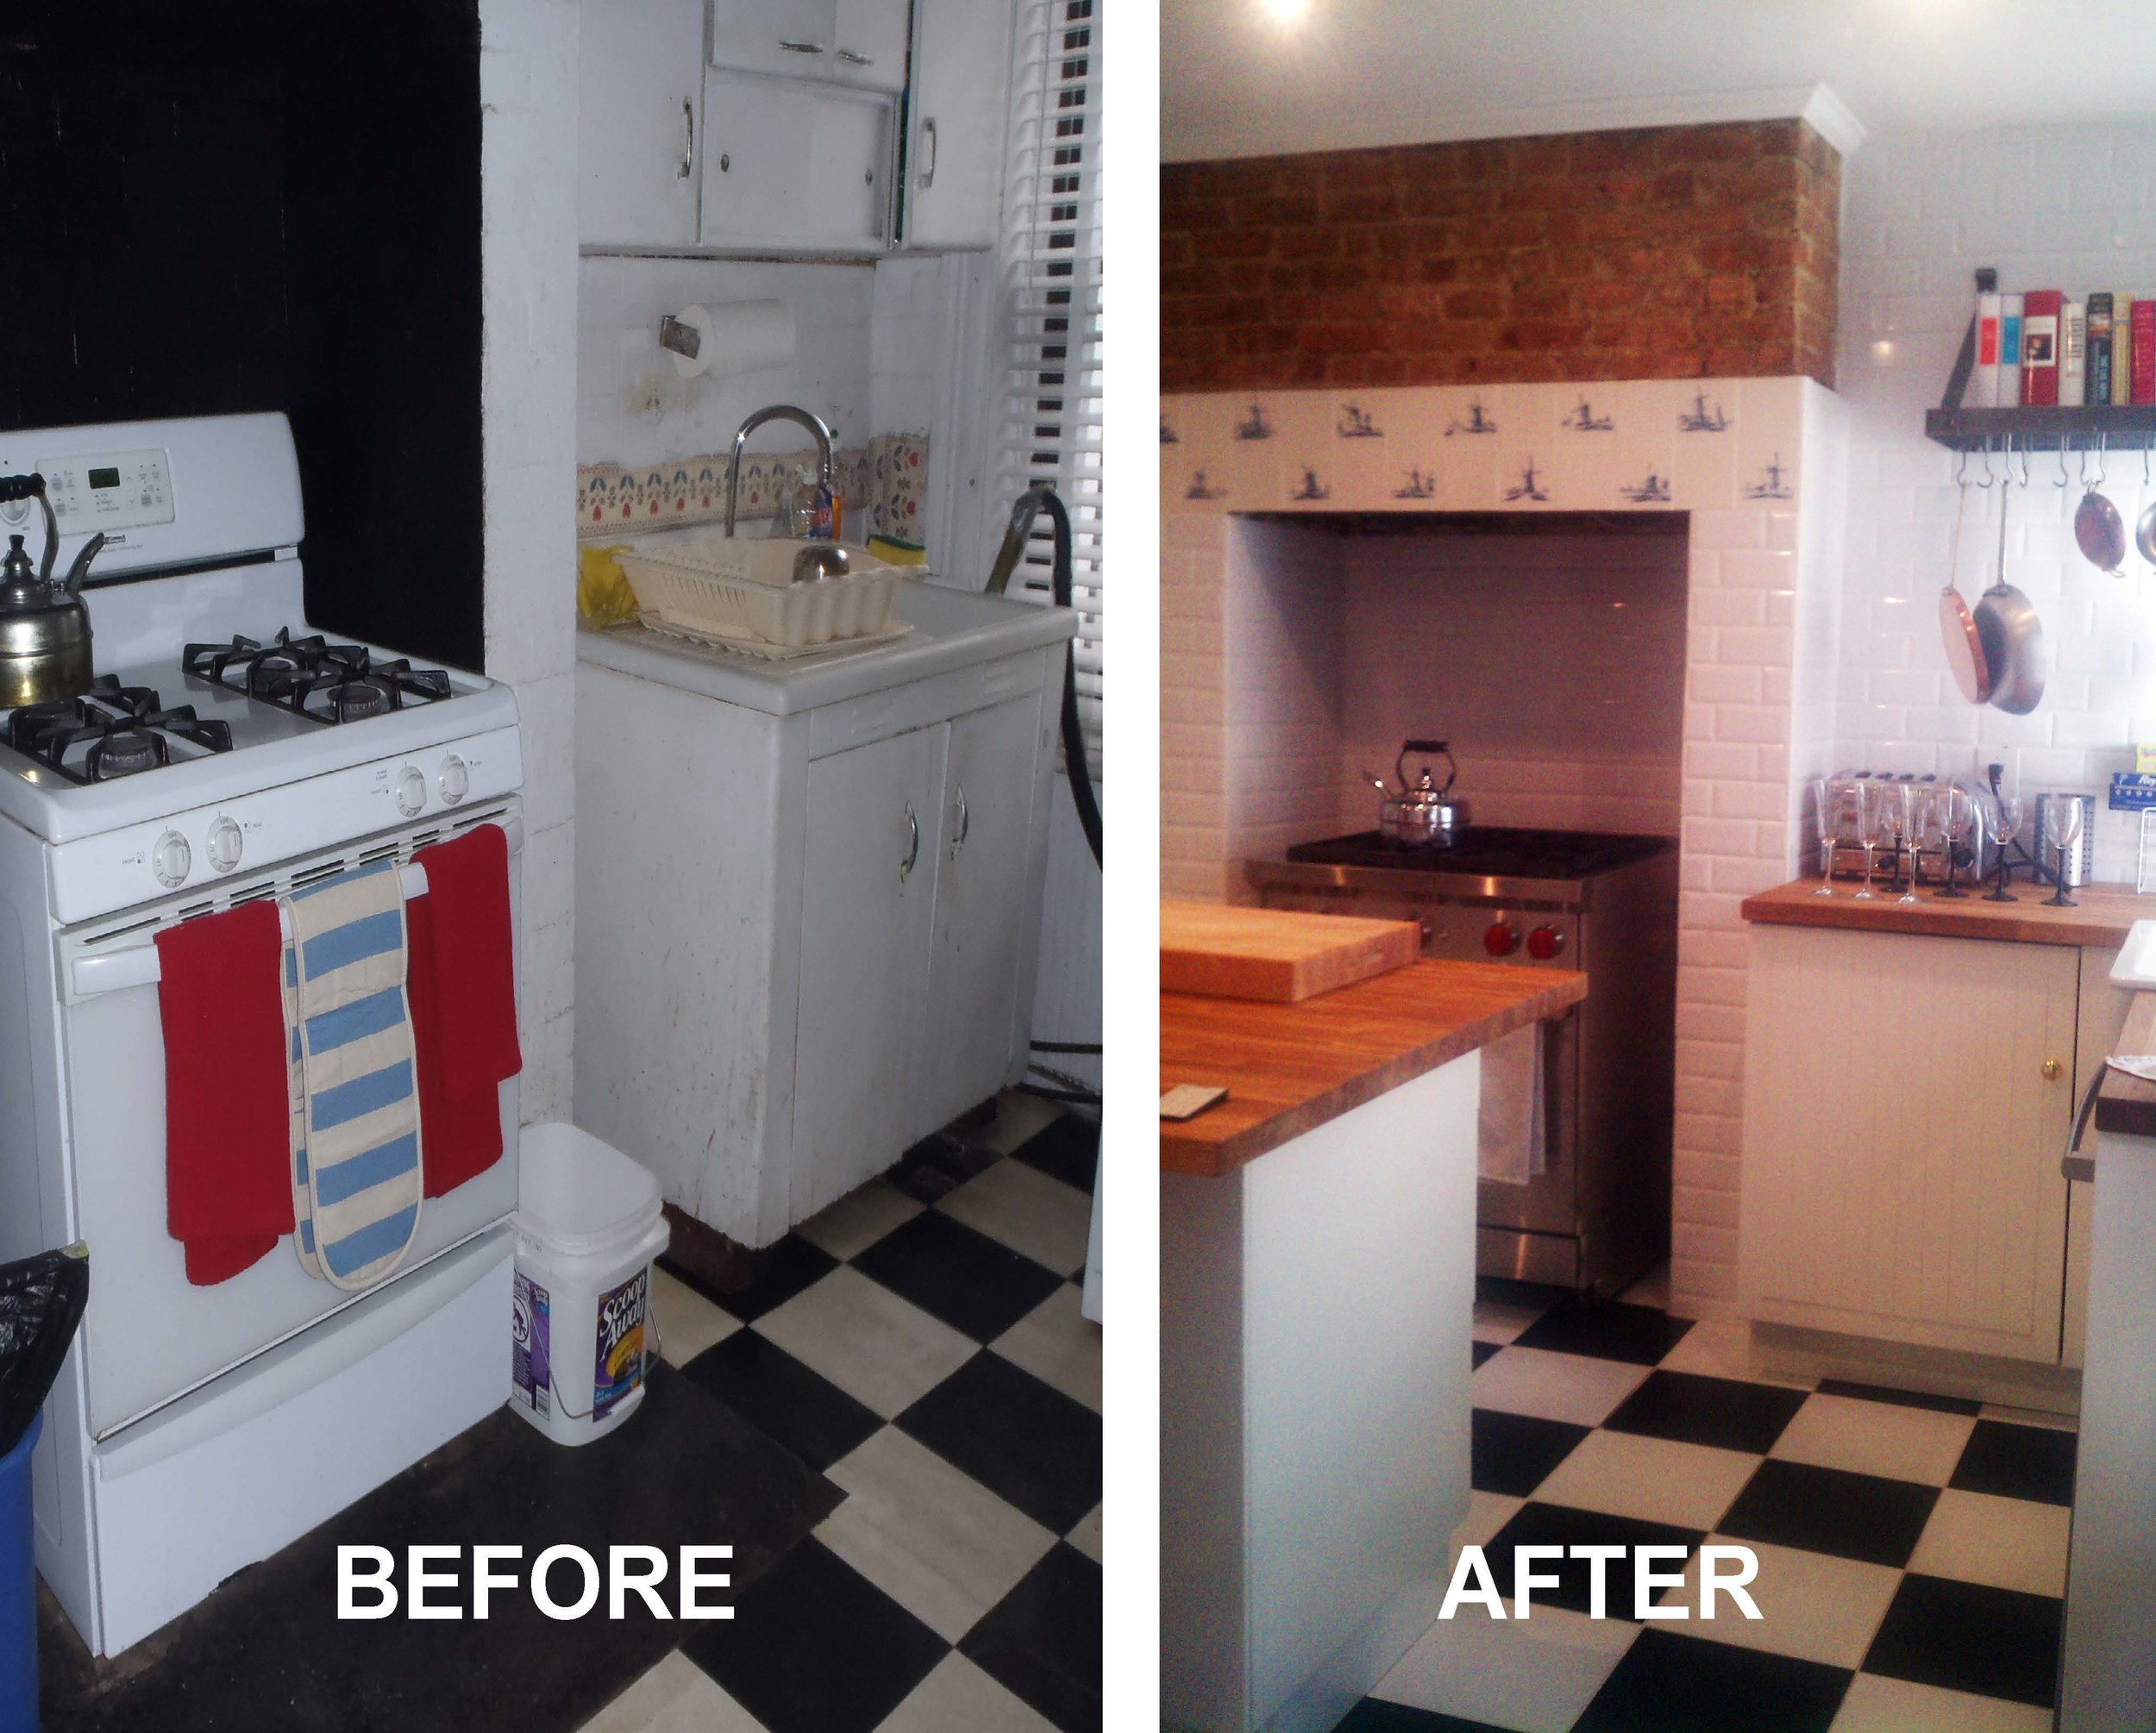 BEFORE AND AFTER PHOTOS_Page_3.jpg